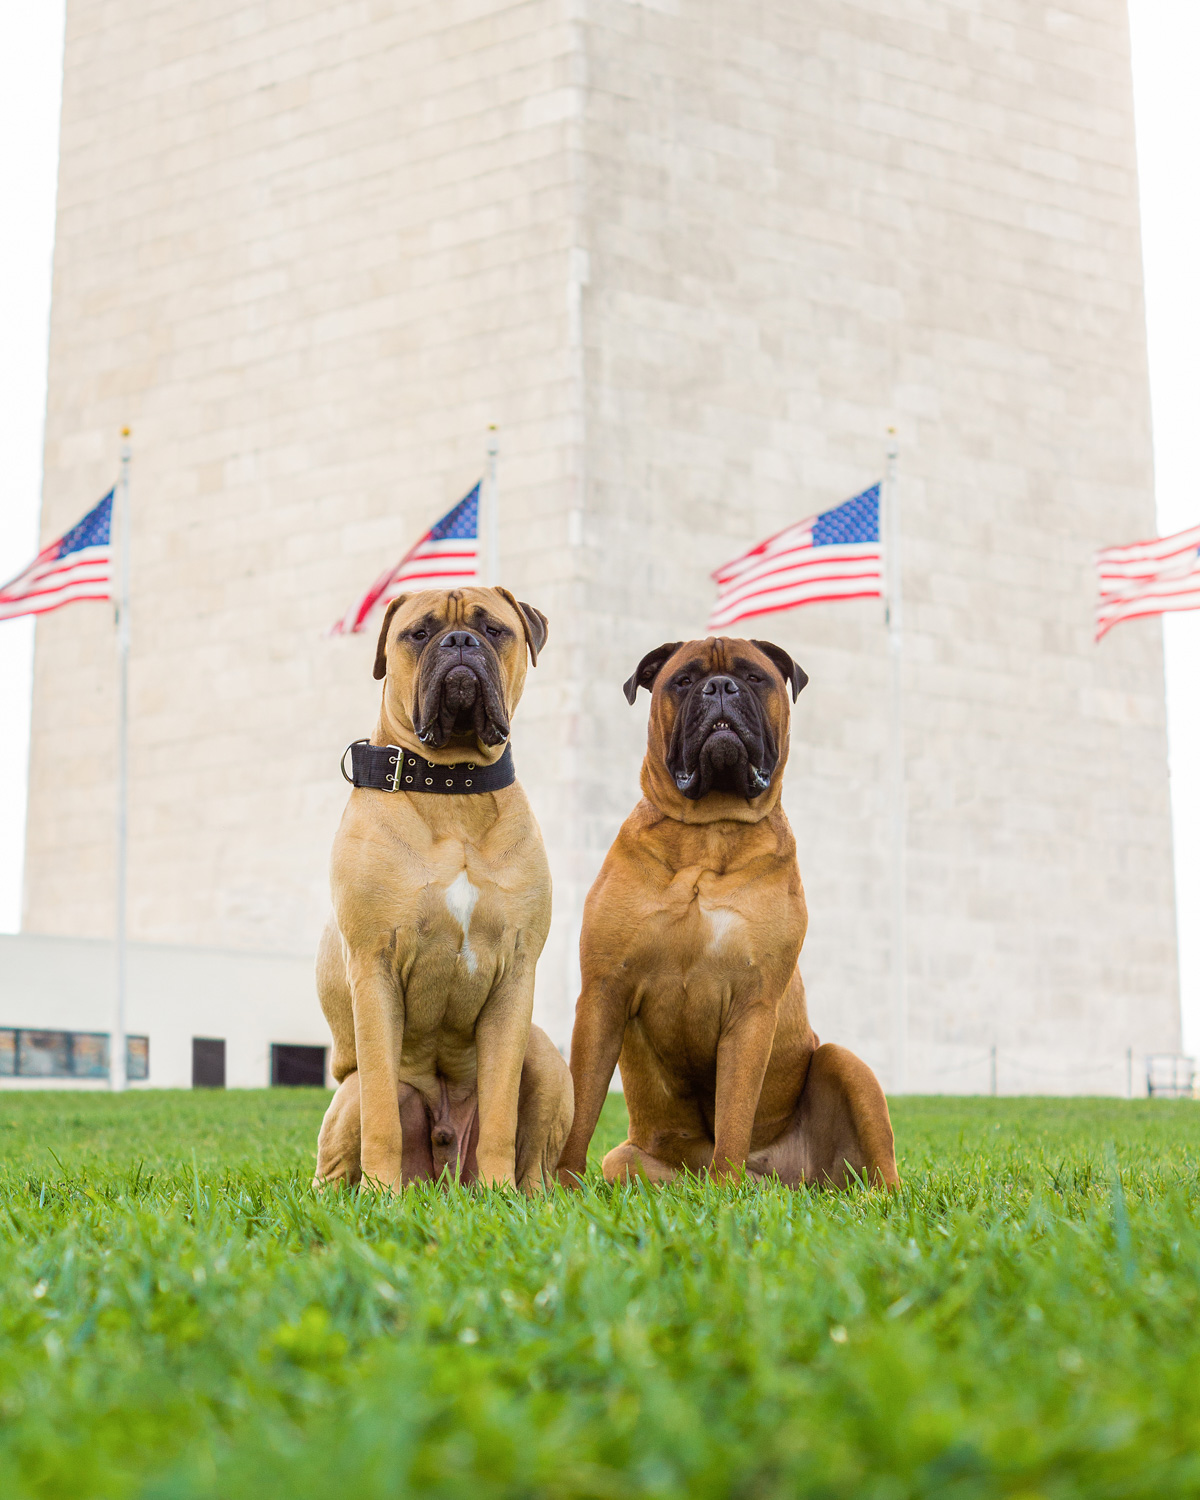 Lincoln (Left) and Rooster (Right) pose in front of the Washington Monument.